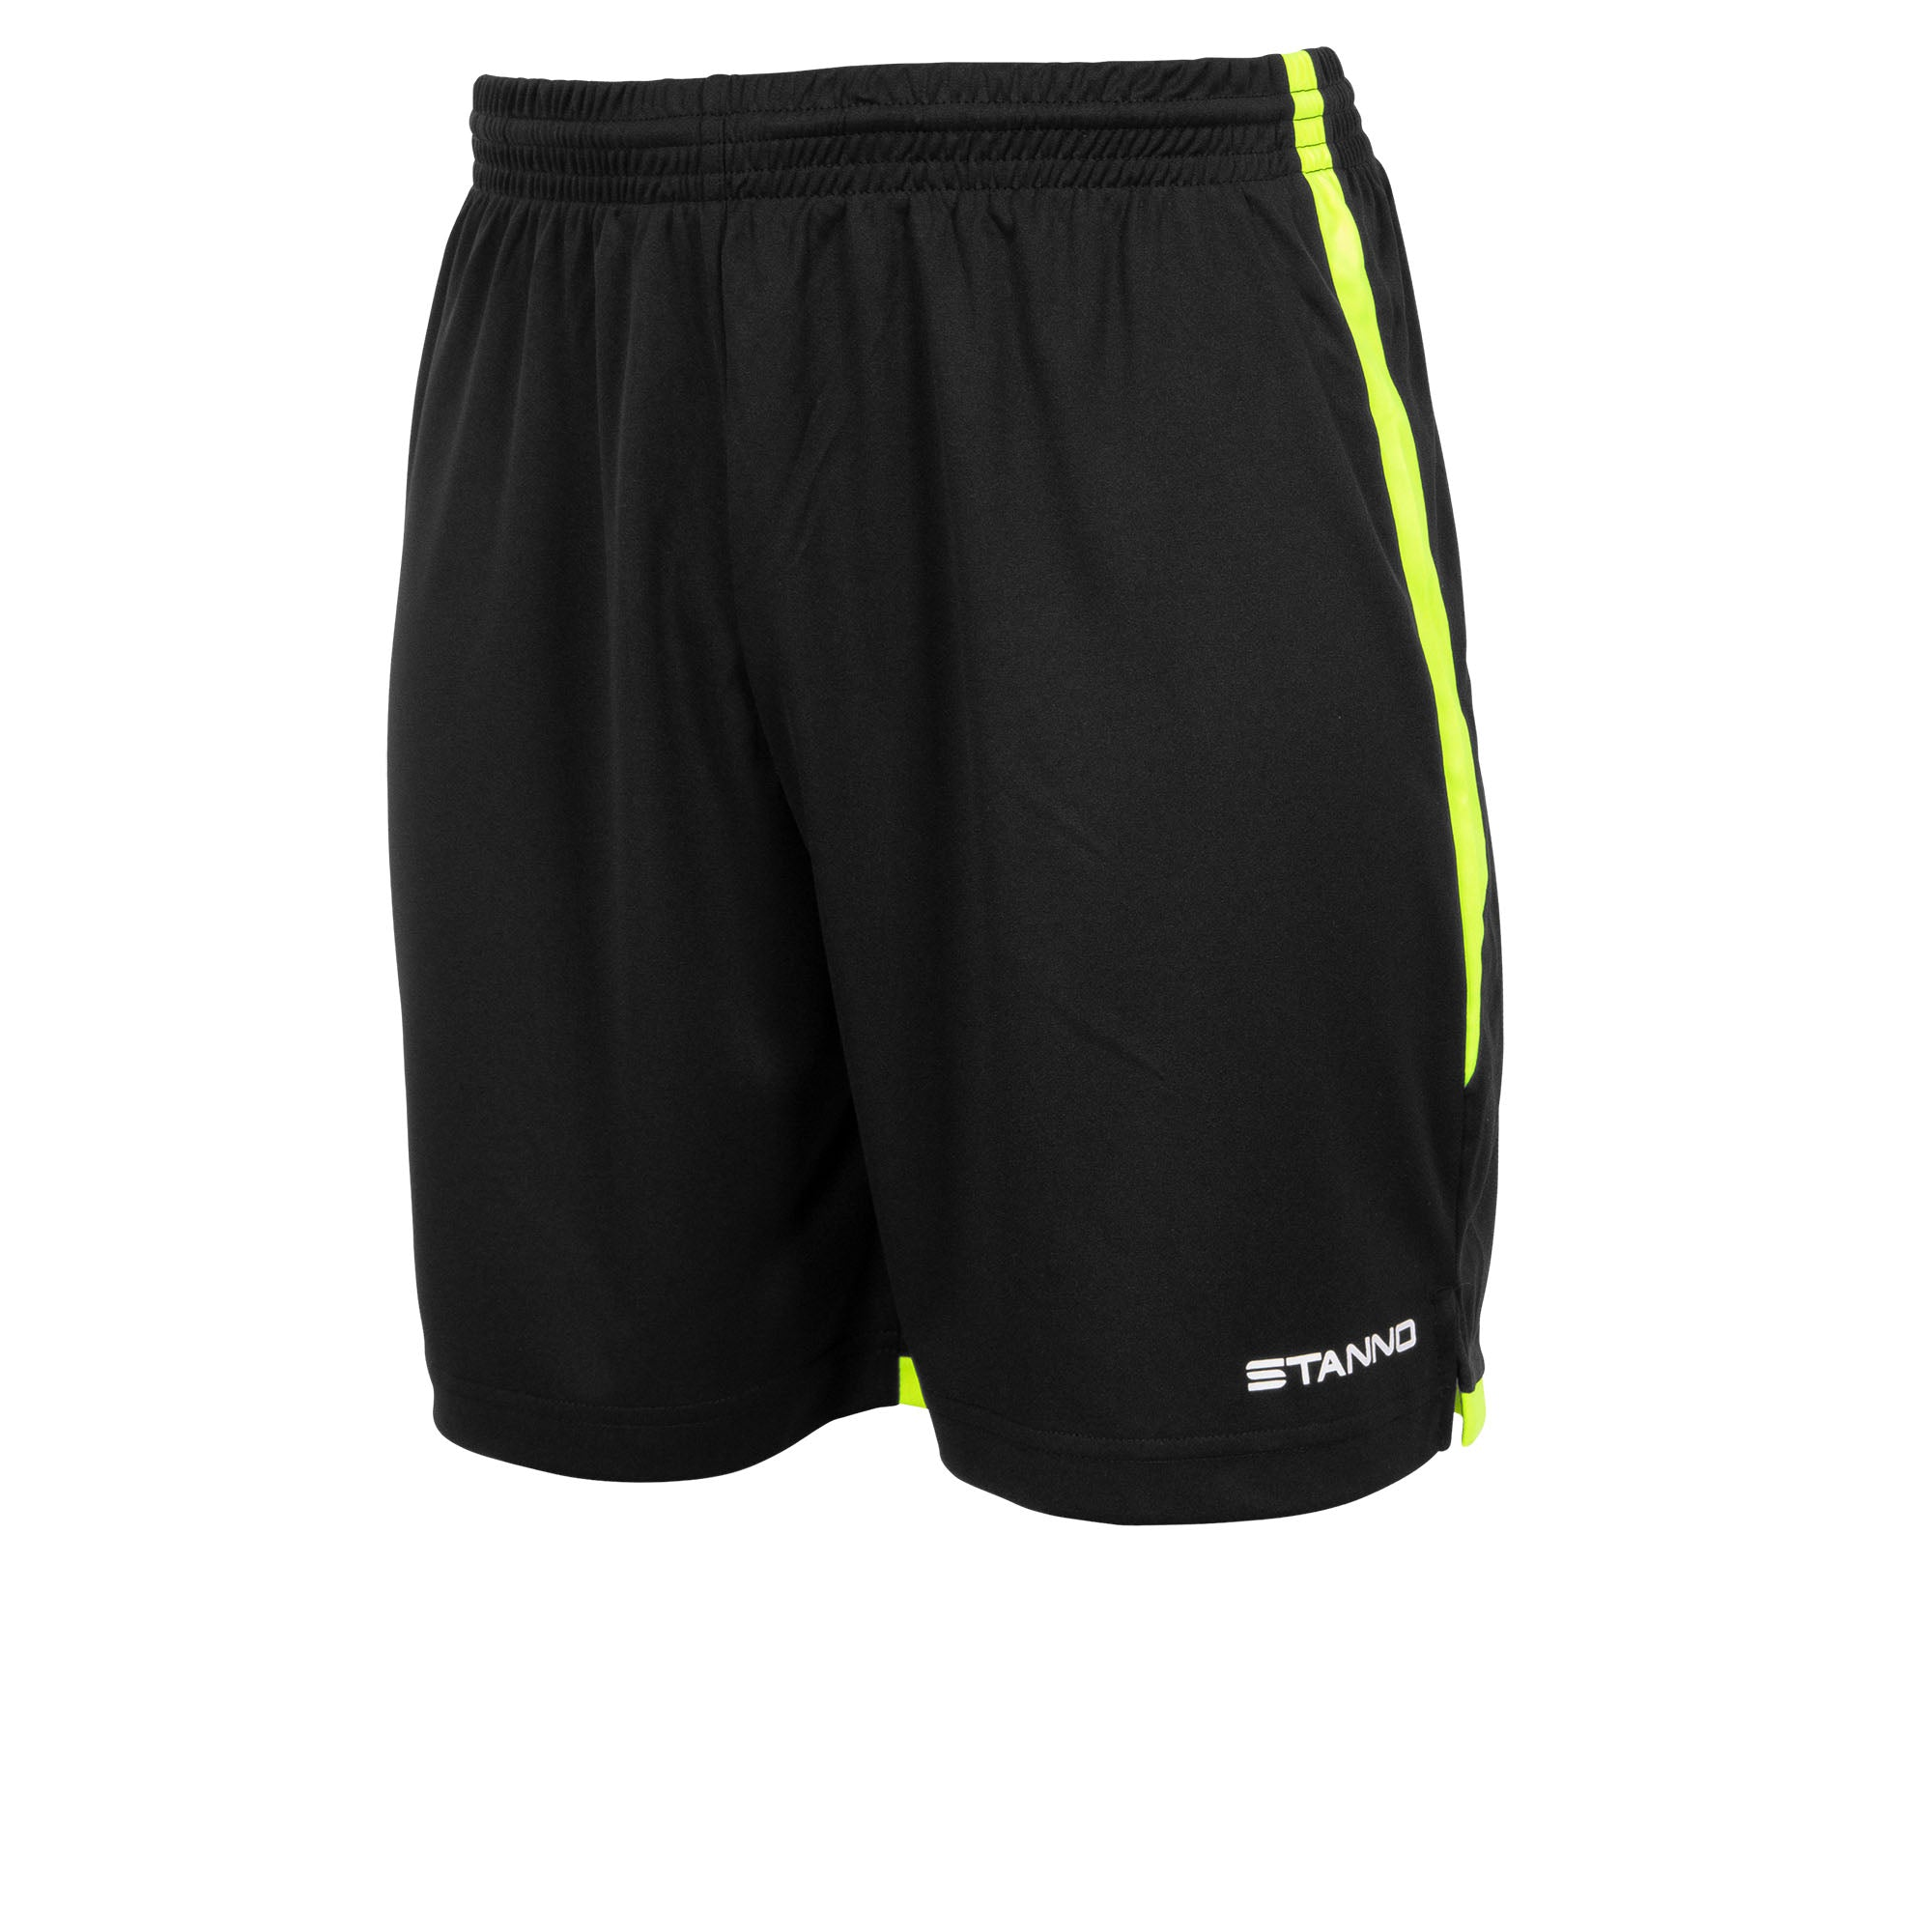 Stanno Focus short in black with neon yellow contrast trim down side of the leg, and Stanno text logo on bottom of the left leg.